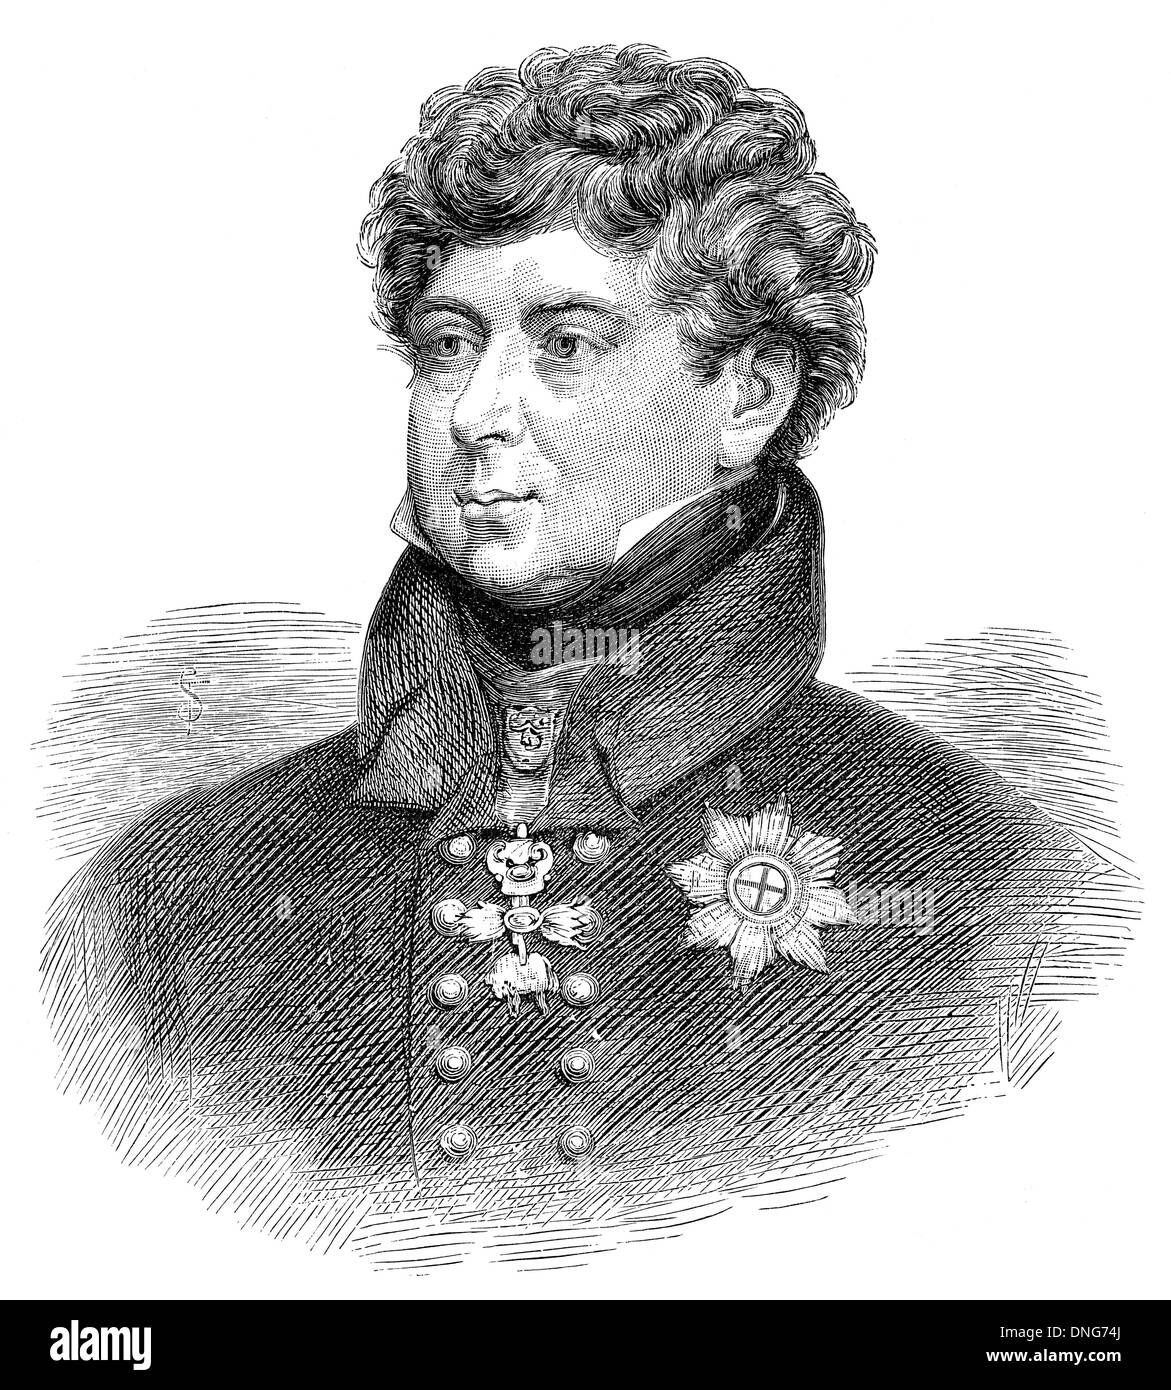 George IV or George Augustus Frederick, 1762 - 1830, king of the United Kingdom of Great Britain and Ireland and king of Hanover - Stock Image